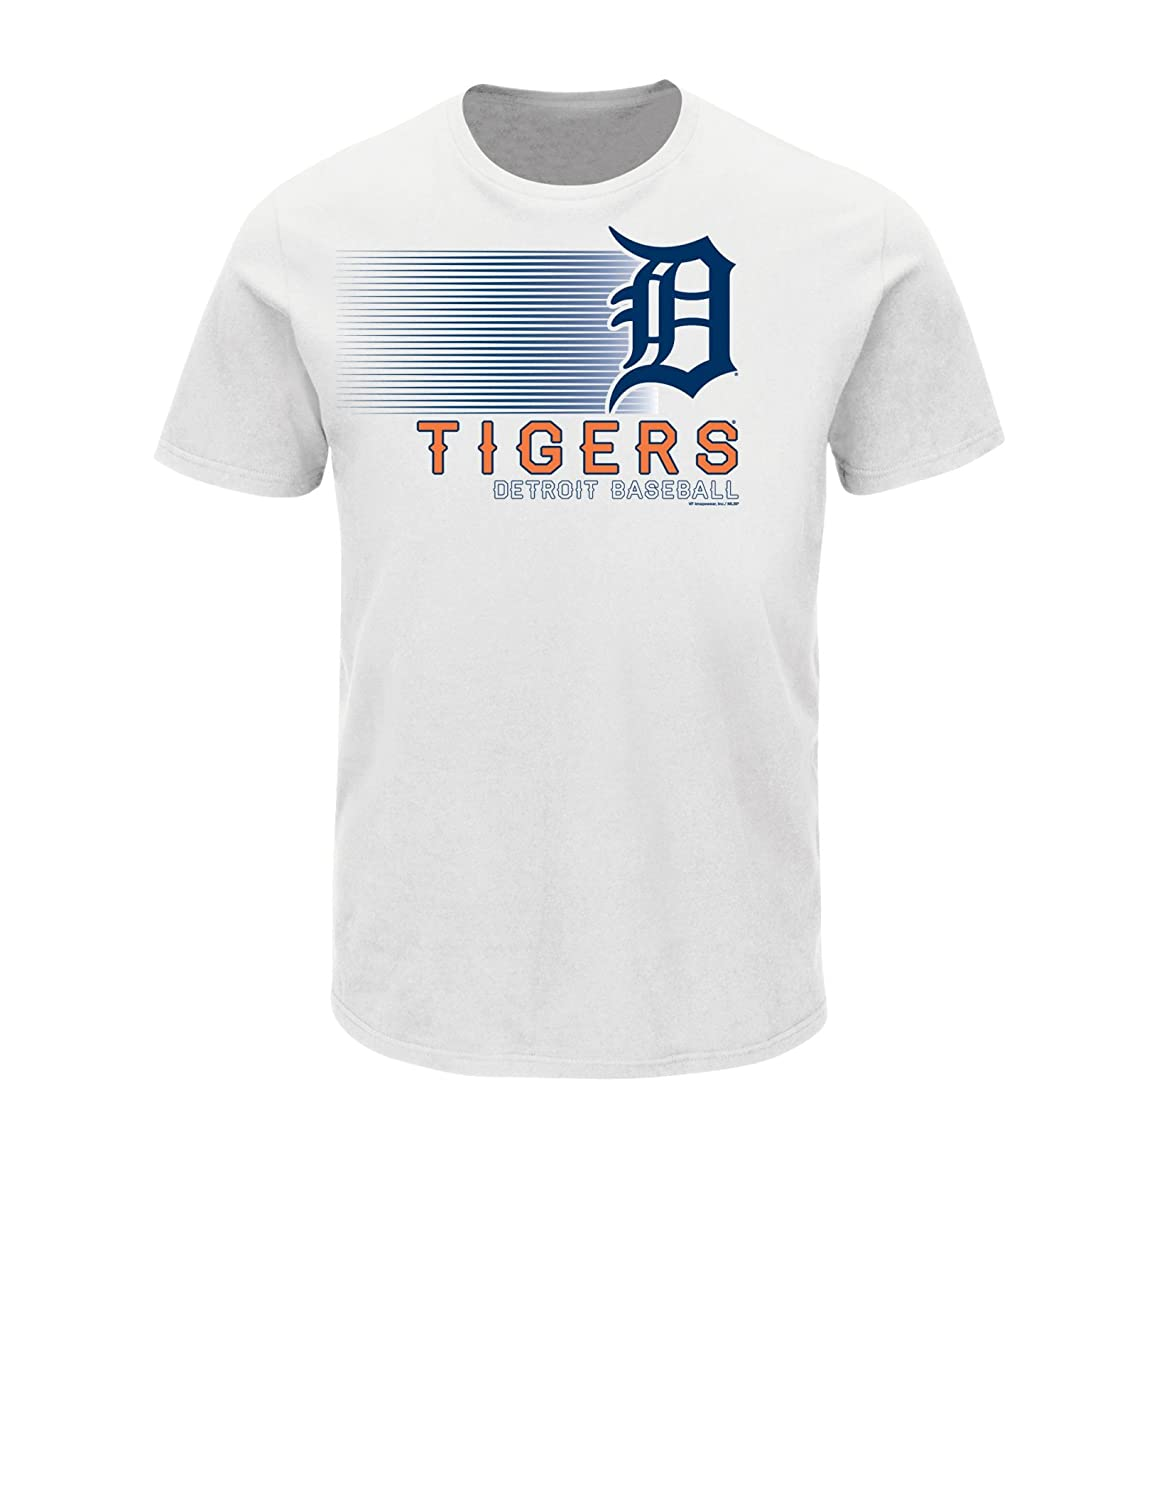 【オープニング大セール】 MLBメンズNotable Jersey Splurge MLBメンズNotable Jersey Medium Detroit Detroit Tigers B01AAG22UE, 野球用品 グランドスラム:9959ad13 --- a0267596.xsph.ru